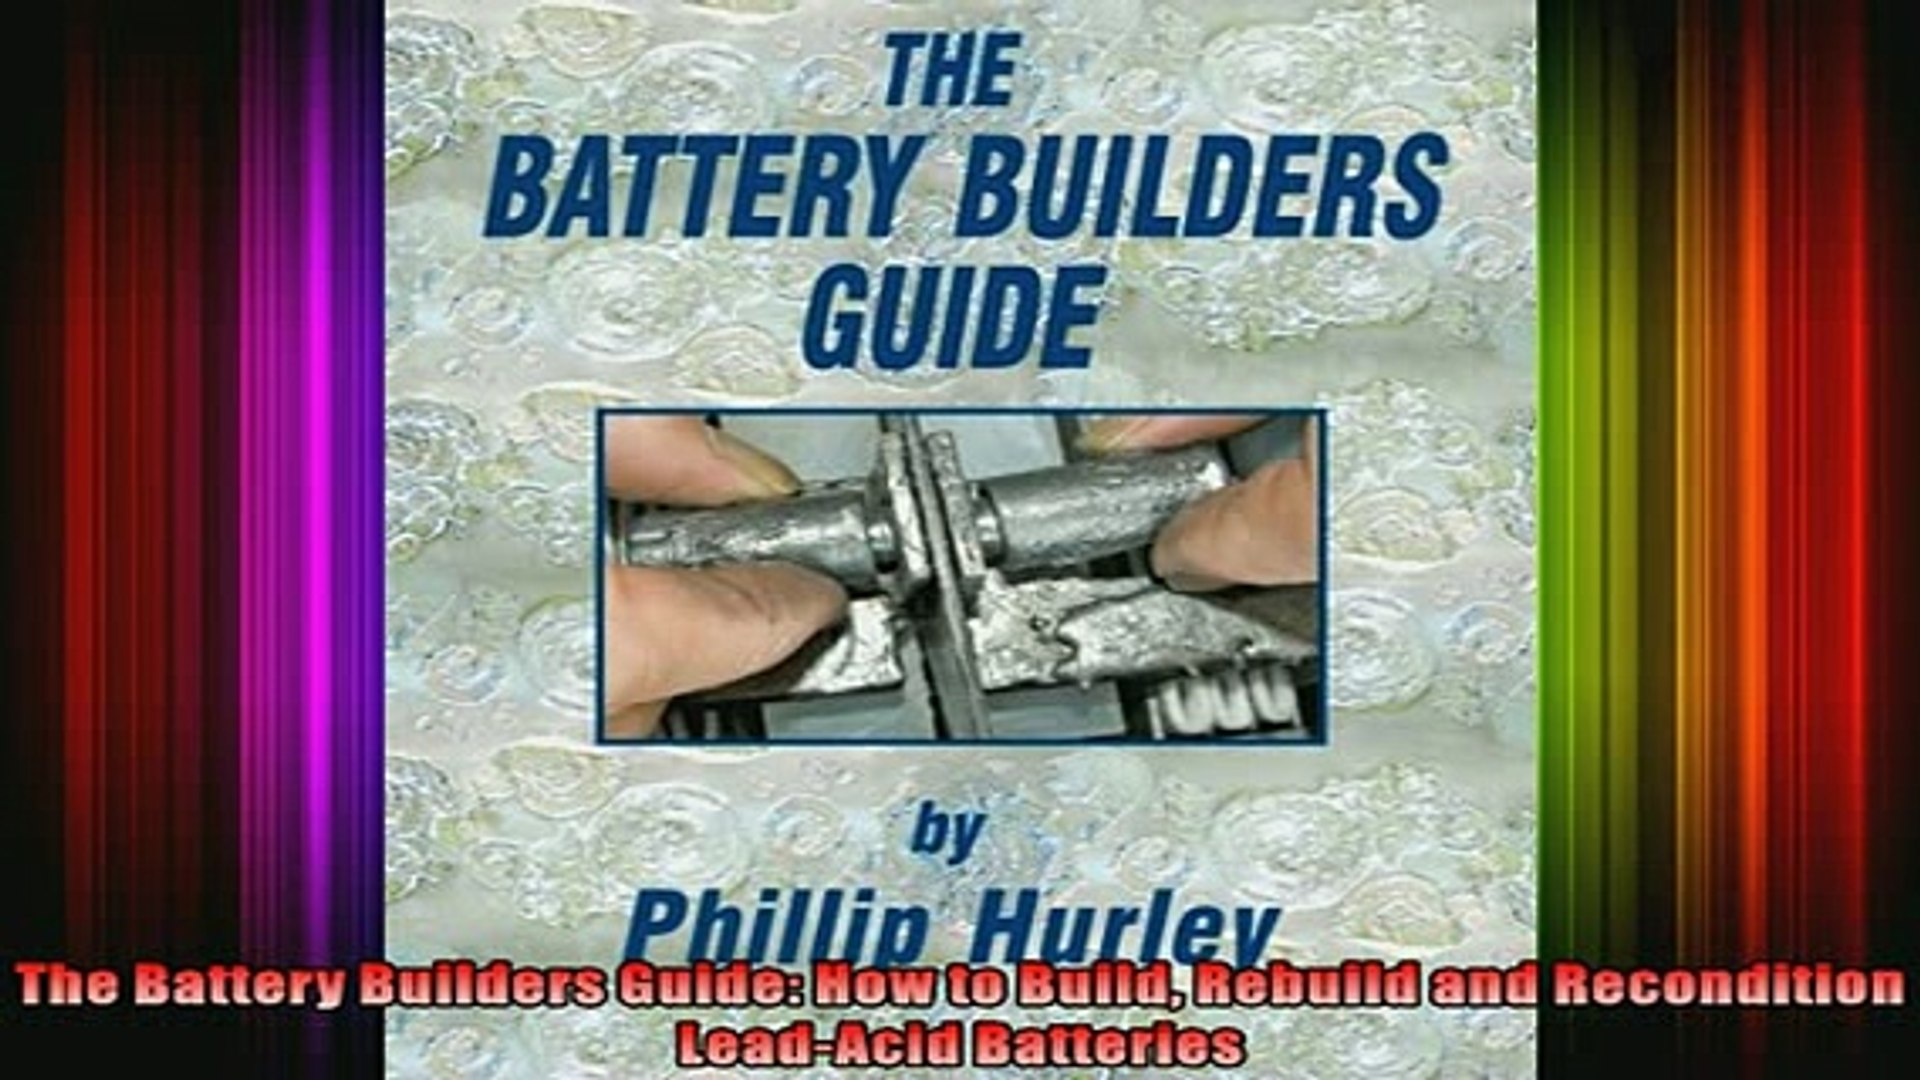 READ THE NEW BOOK   The Battery Builders Guide How to Build Rebuild and Recondition LeadAcid Batteri